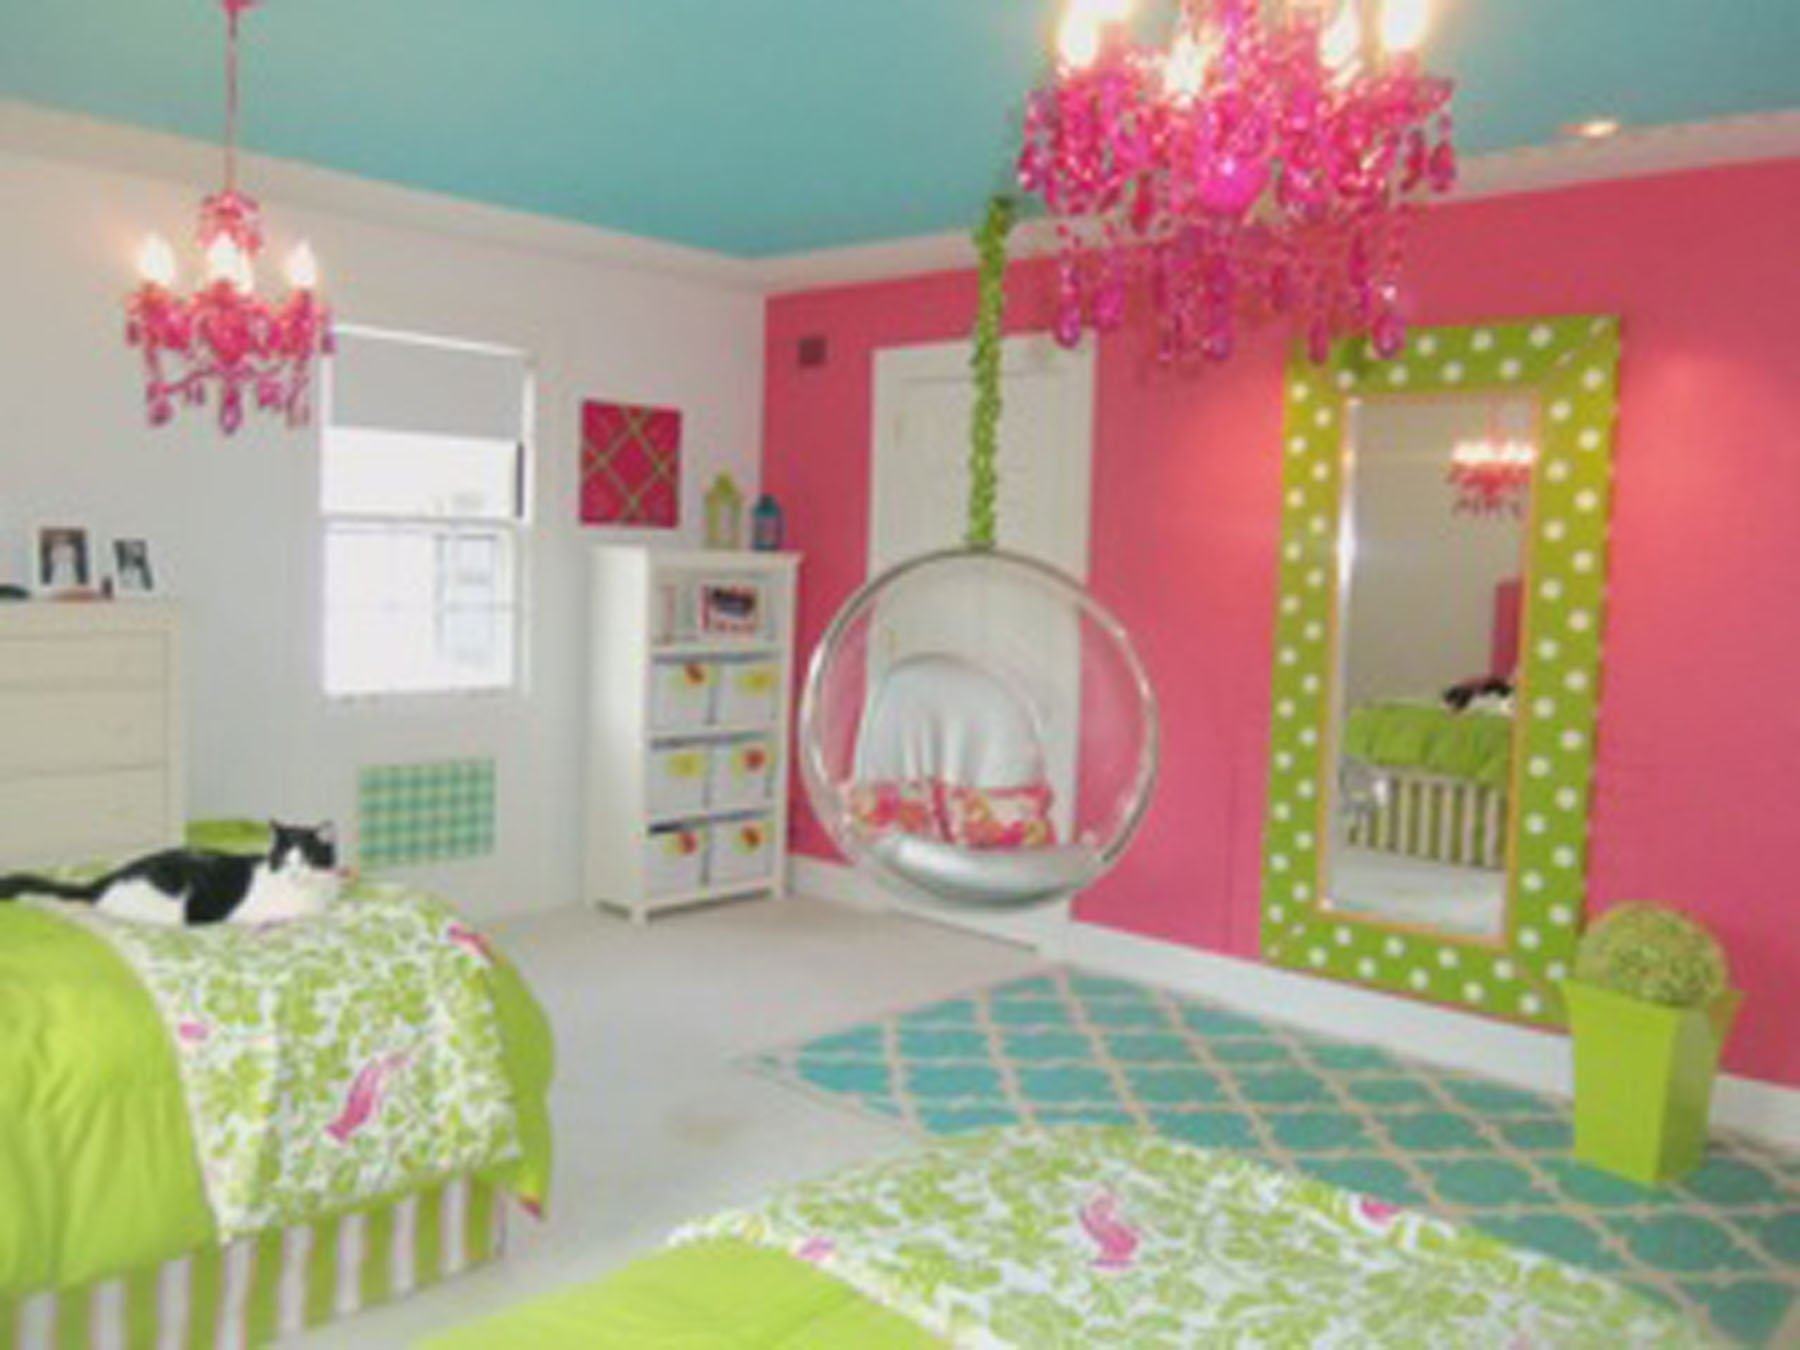 10 Great Room Decorating Ideas For Girls bedroom glamorous bedroom decorating ideas teenage girl excellent 2020